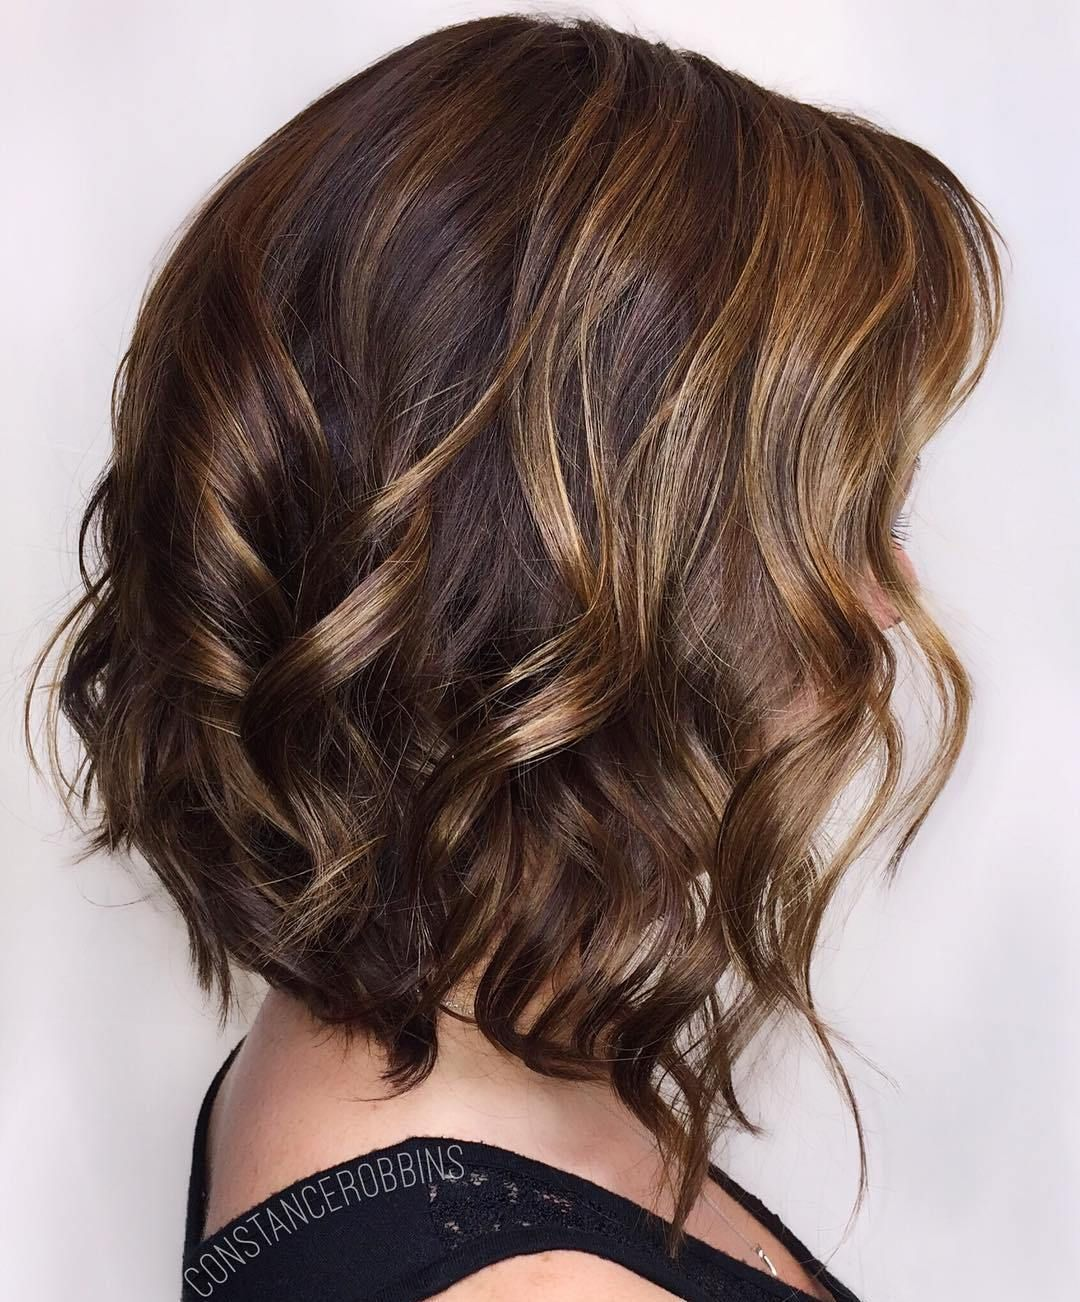 Wavy Brown Bob With Honey Highlights Brown Hair With Highlights Brown Hair With Highlights And Lowlights Hair Color Highlights